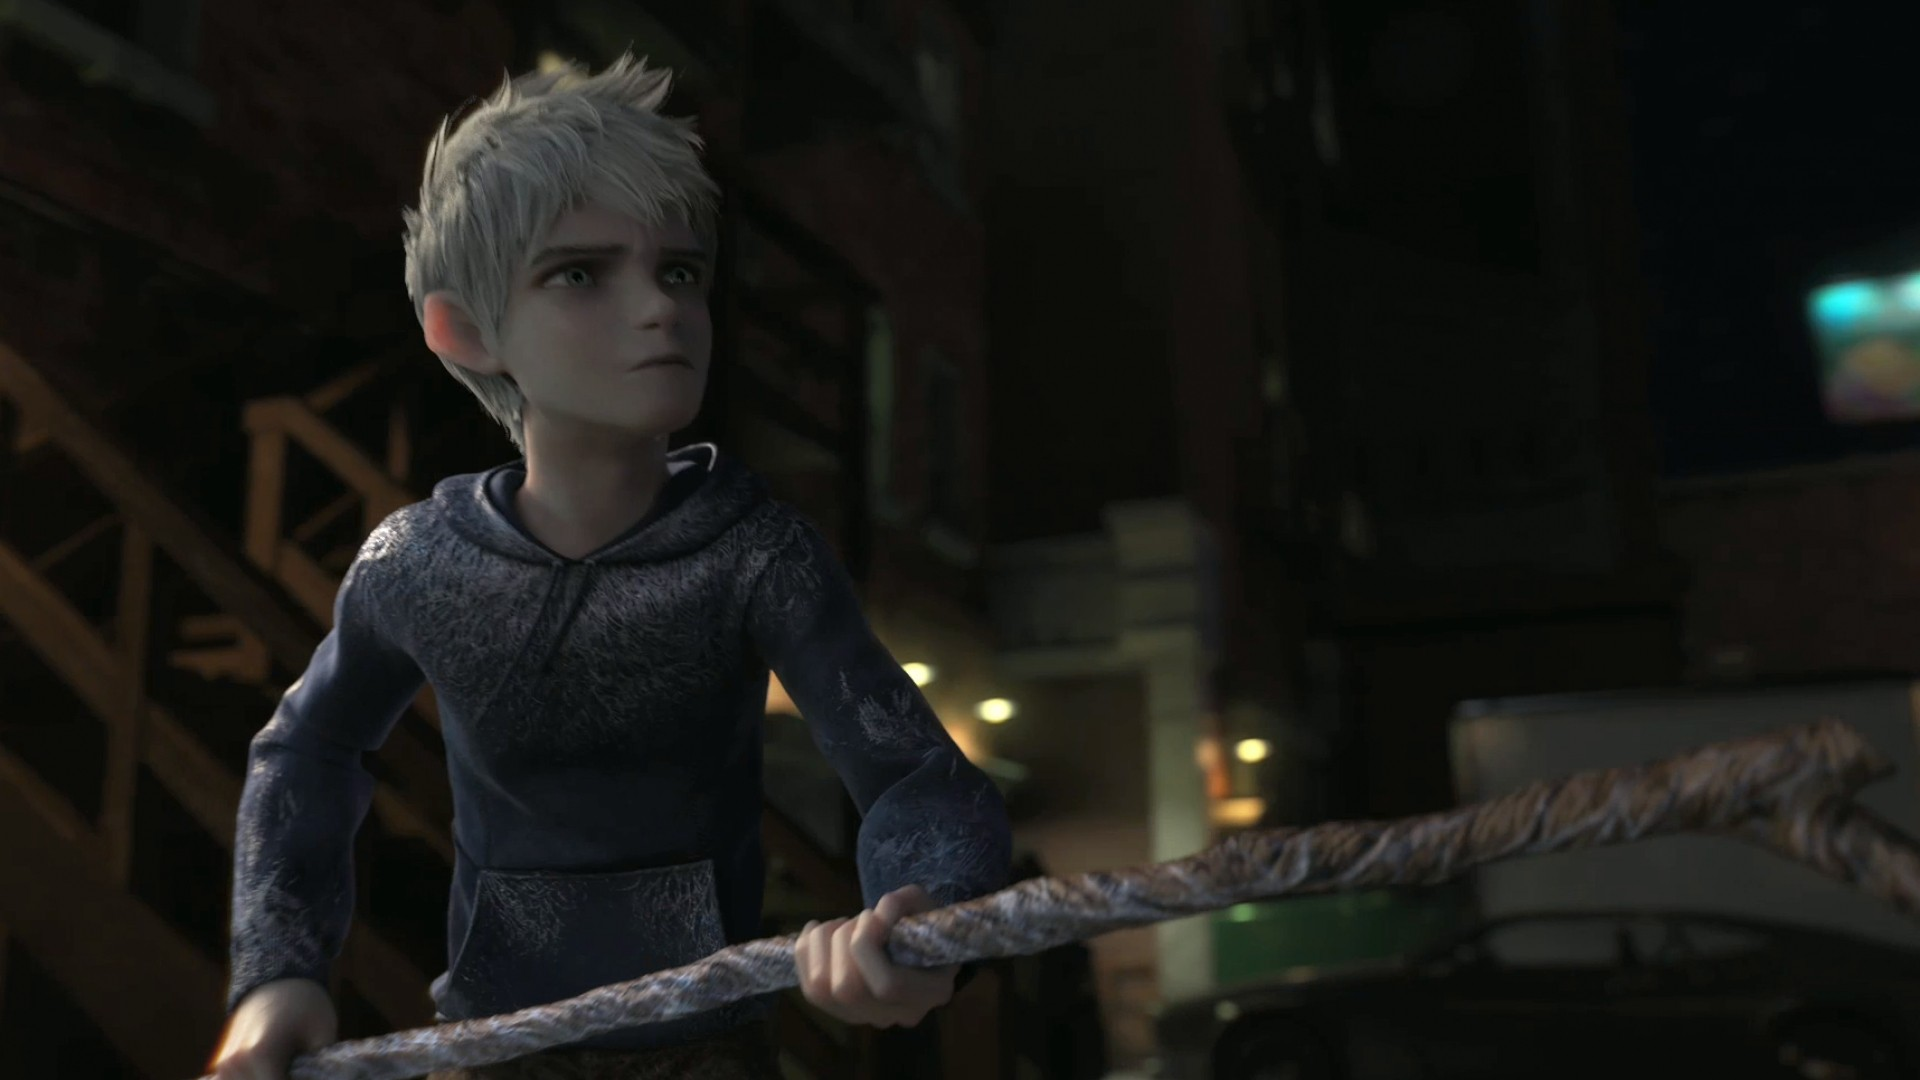 jack frost imagine on Tumblr |Jack Frost Angry